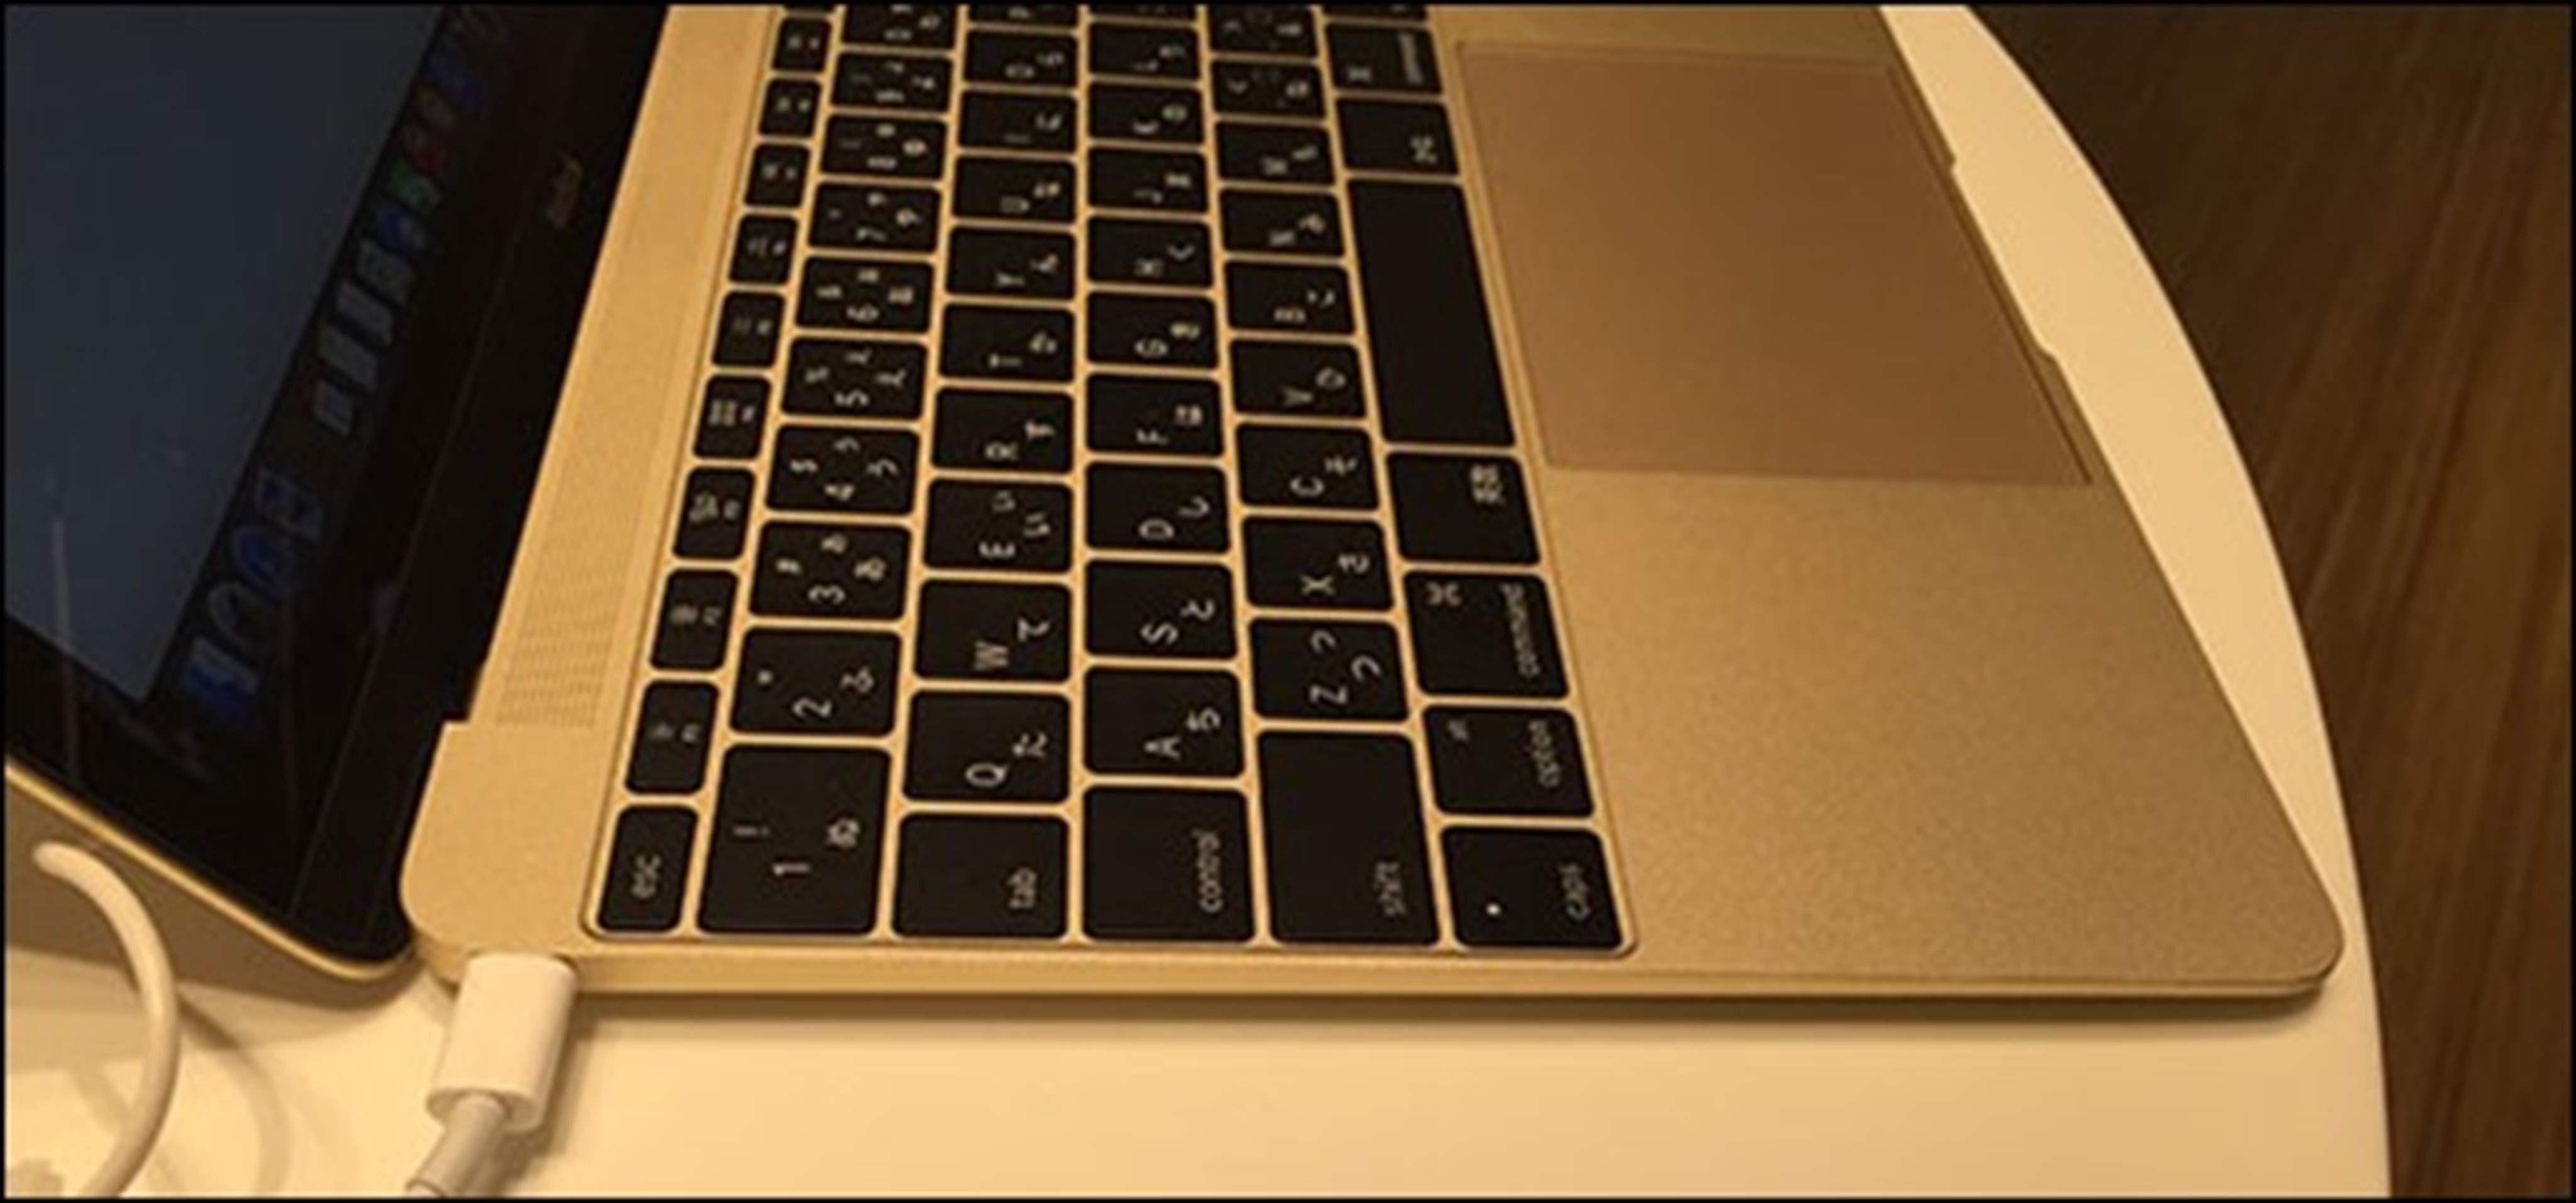 macbook-2015-6-side-usb-c_thumb